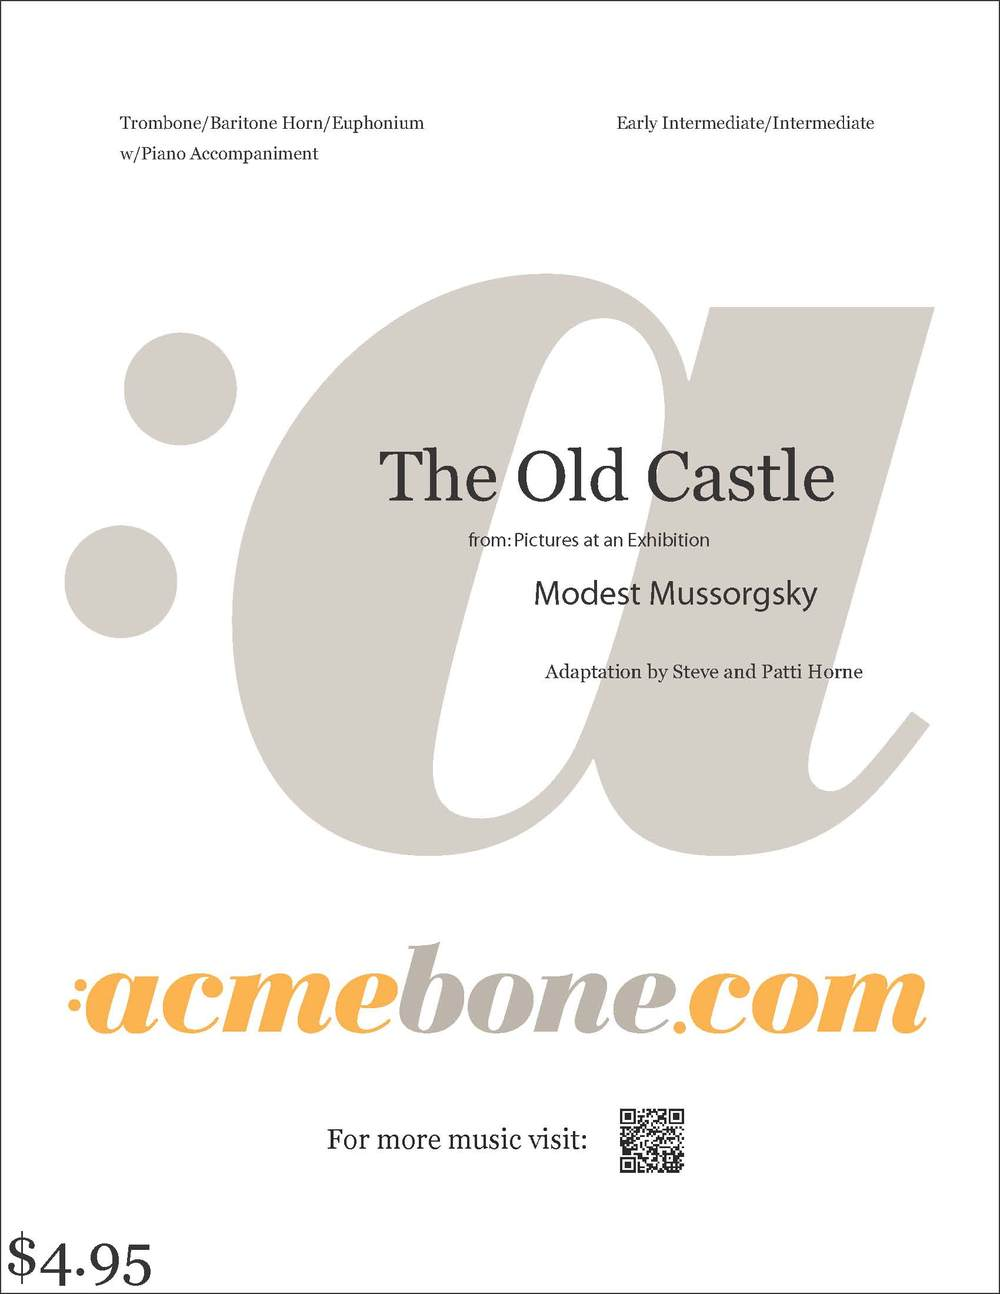 The Old Castle_digital_cover_w-bo_price.jpg